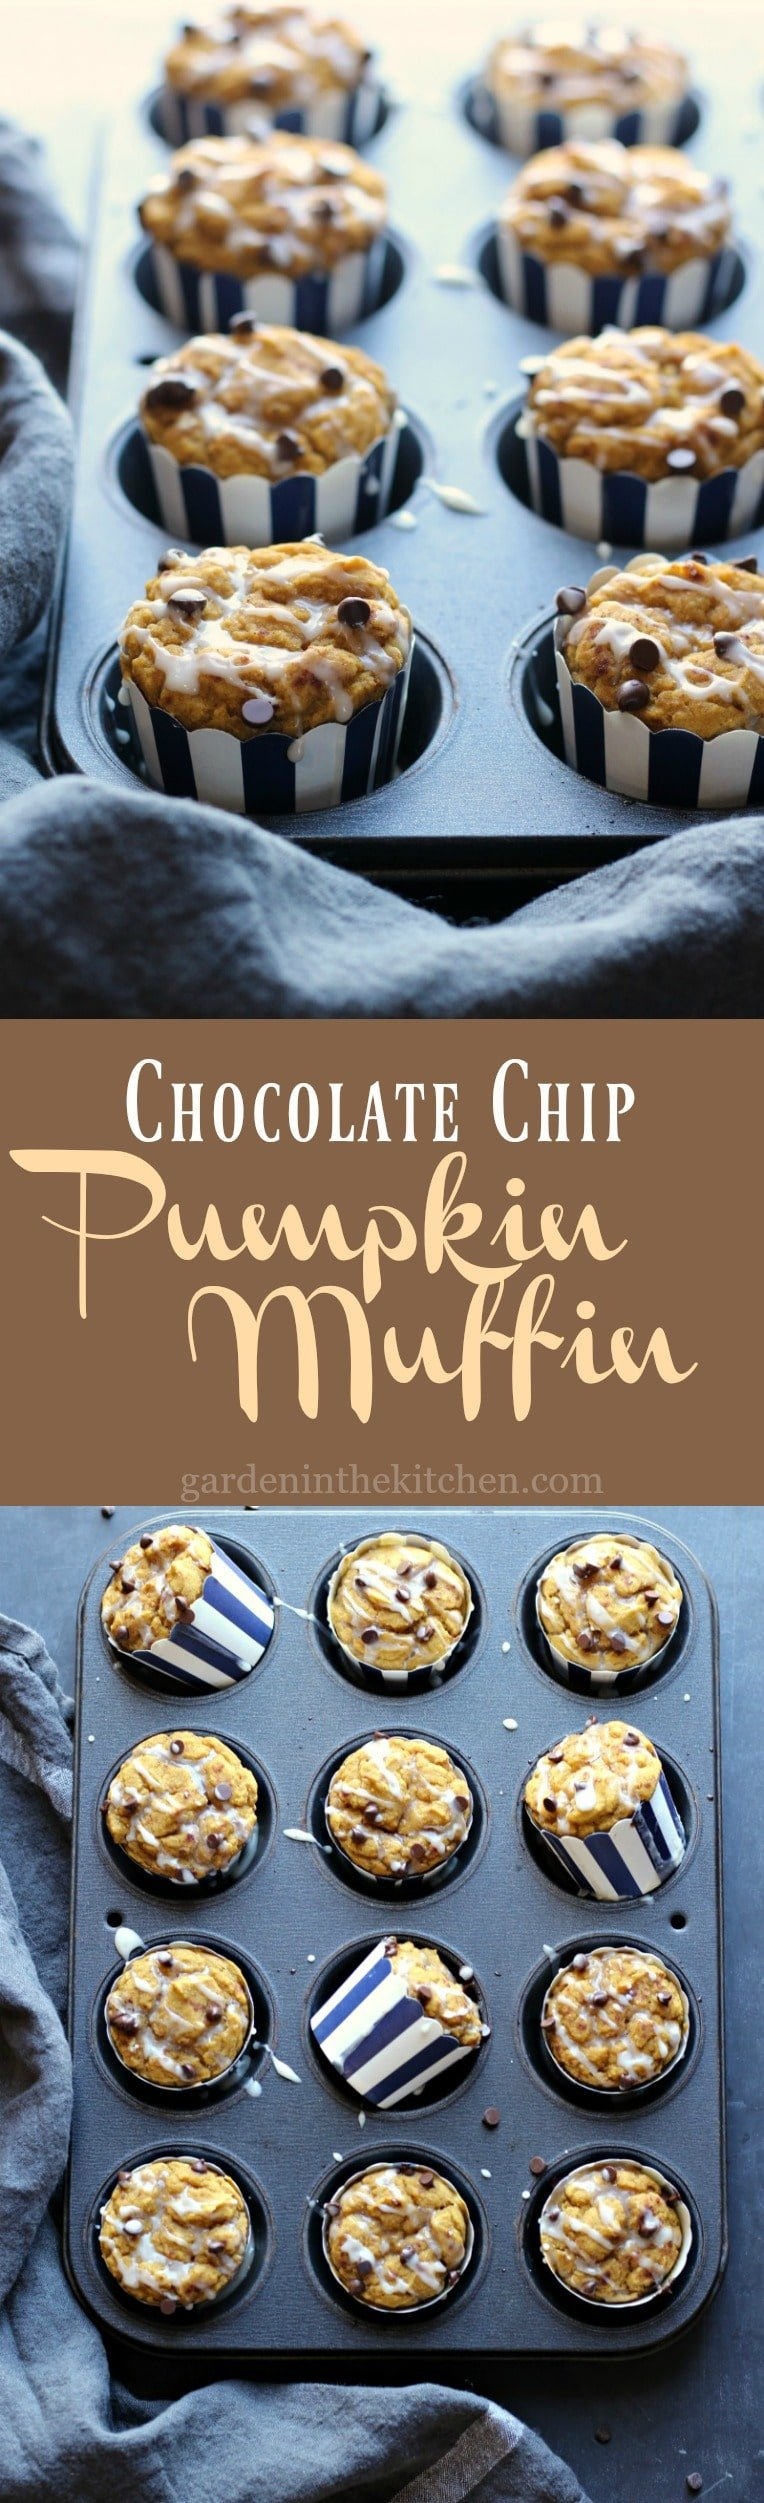 Chocolate Chip Pumpkin Muffin (Gluten-free, Dairy-free) | gardeninthekitchen.com